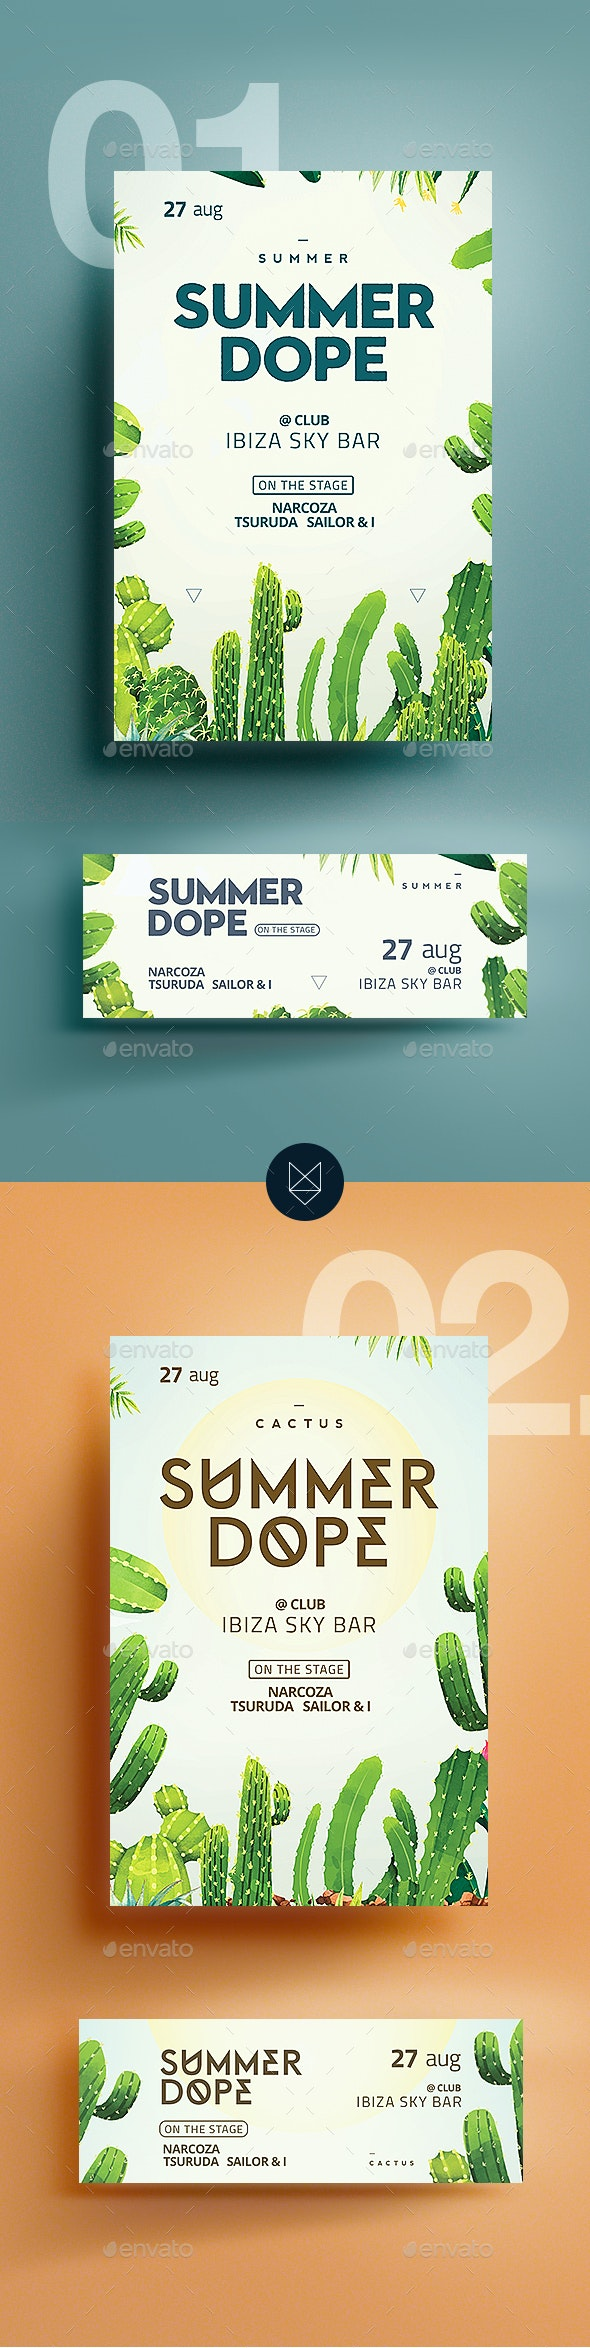 Summer Dope Flyer - Clubs & Parties Events